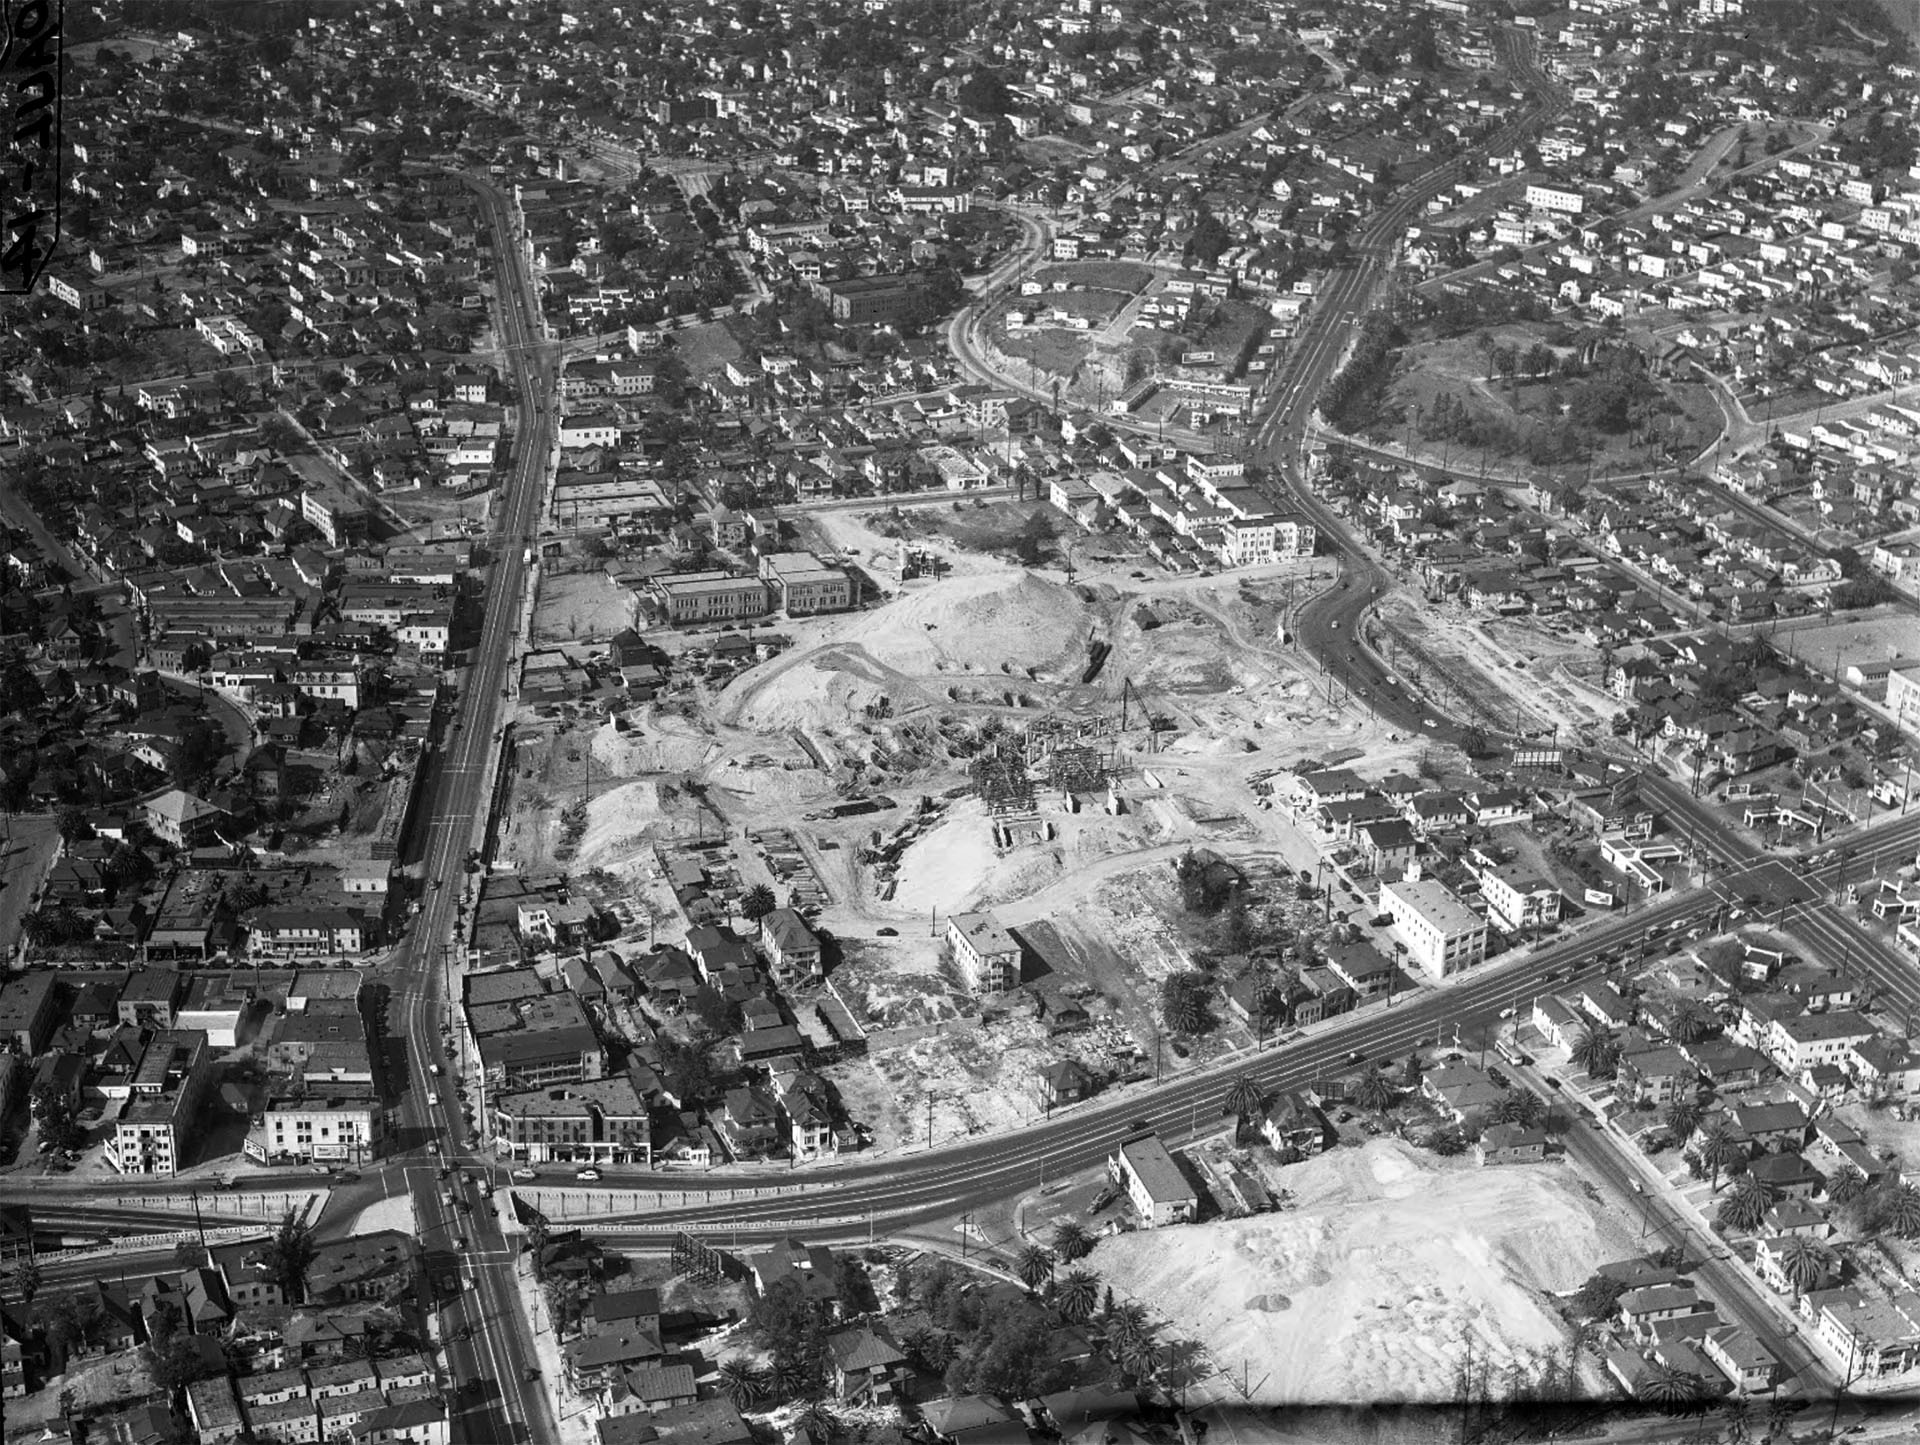 Aerial view of massive excavation and construction work for the interchange joining Arroyo Seco [Pasadena], Harbor, Hollywood and Santa Ana freeways, 1948